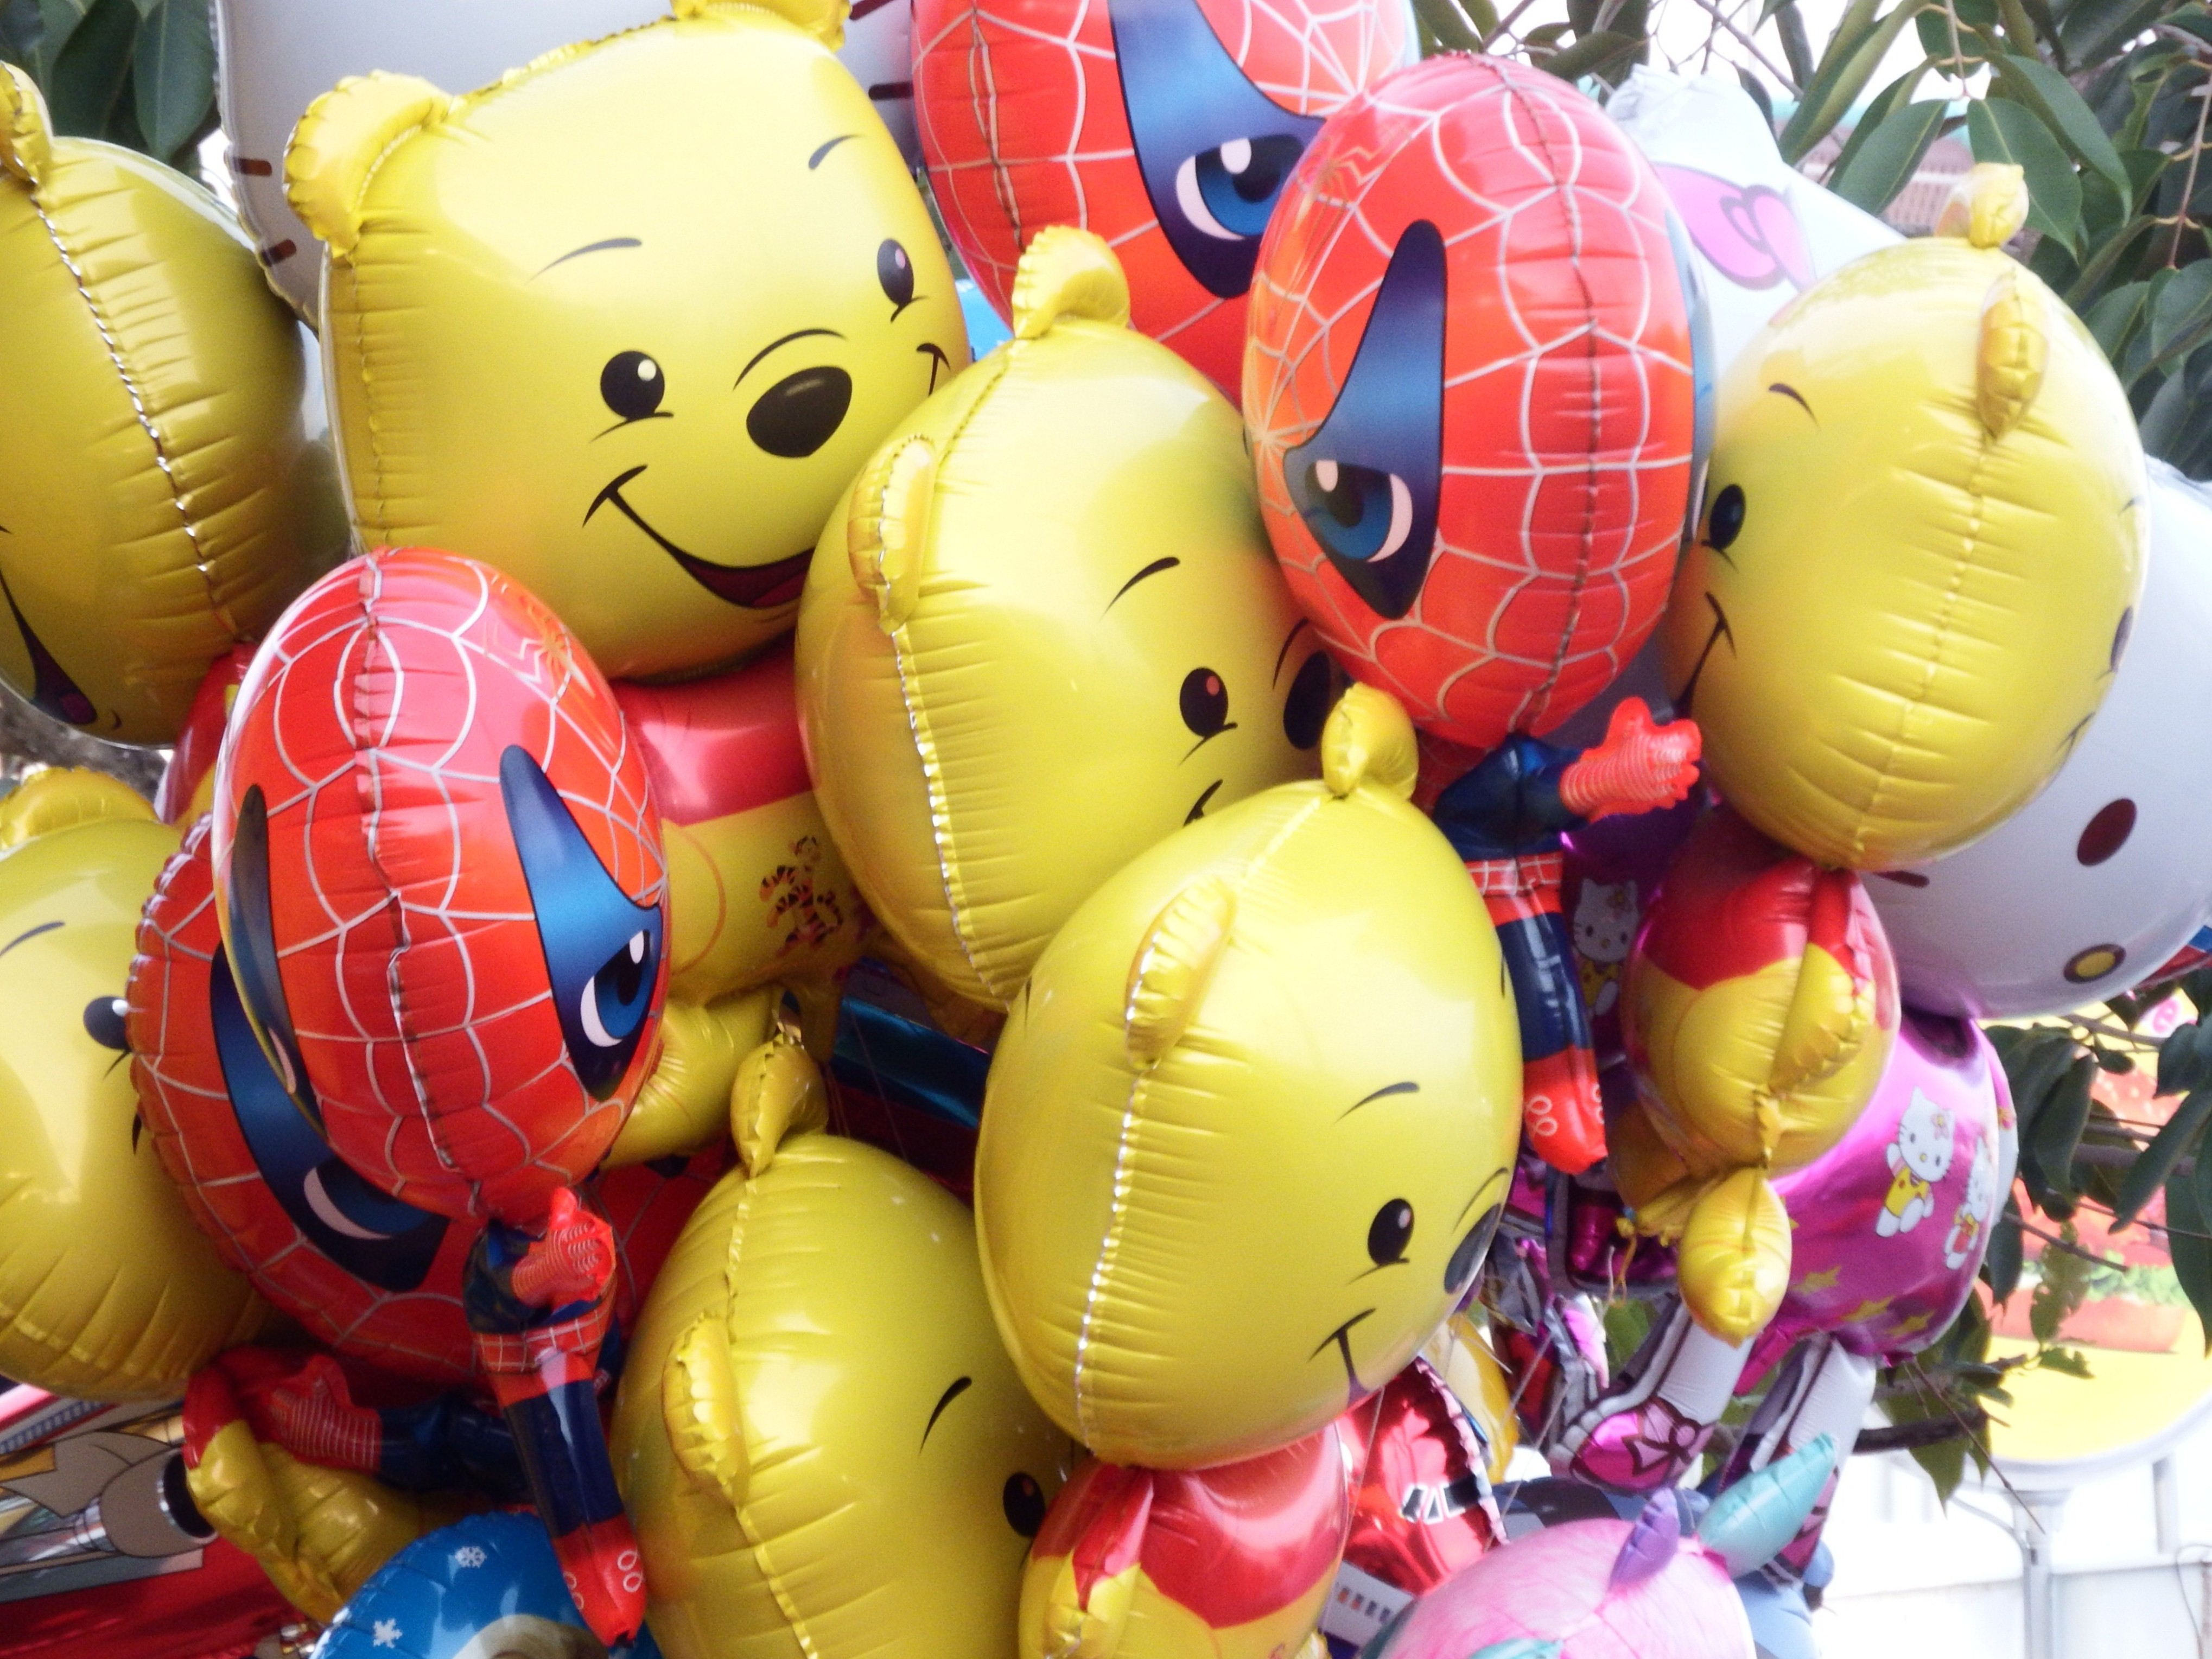 Themed balloons for kids photo